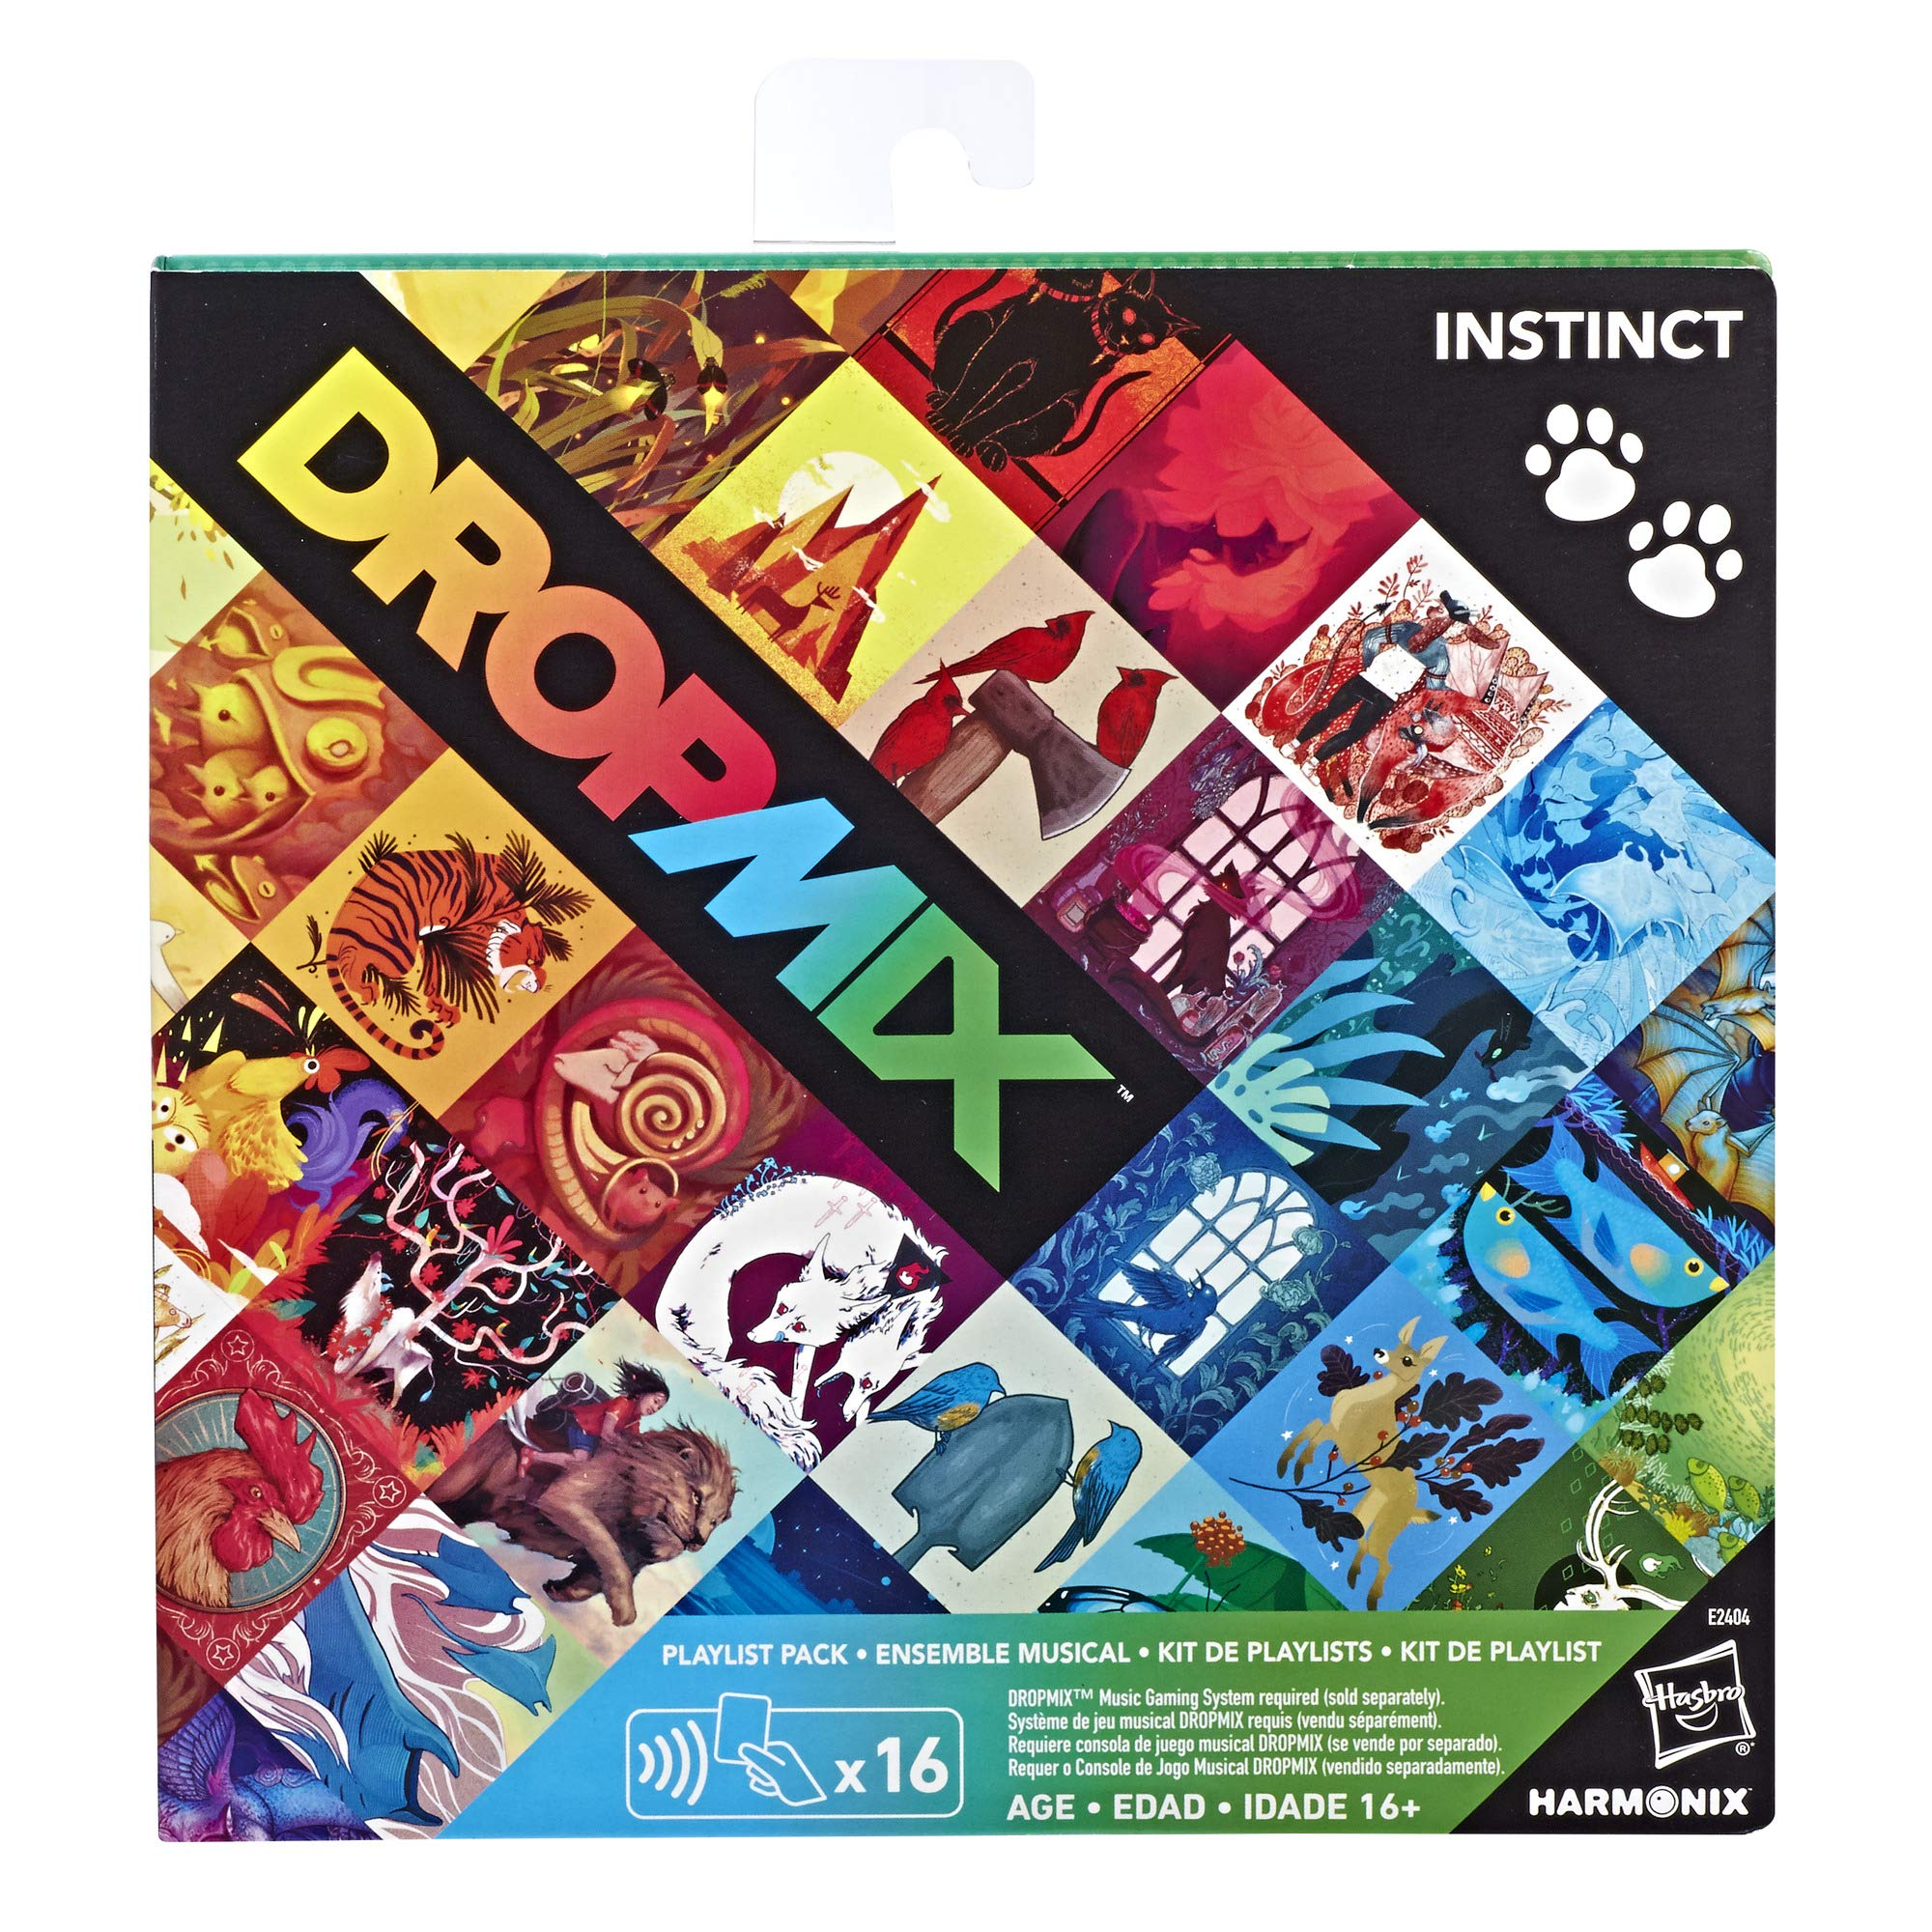 Hasbro DMX Dropmix 8 Playlist Pack (Instinct) Expansion for Music Mixing Board and Card Game